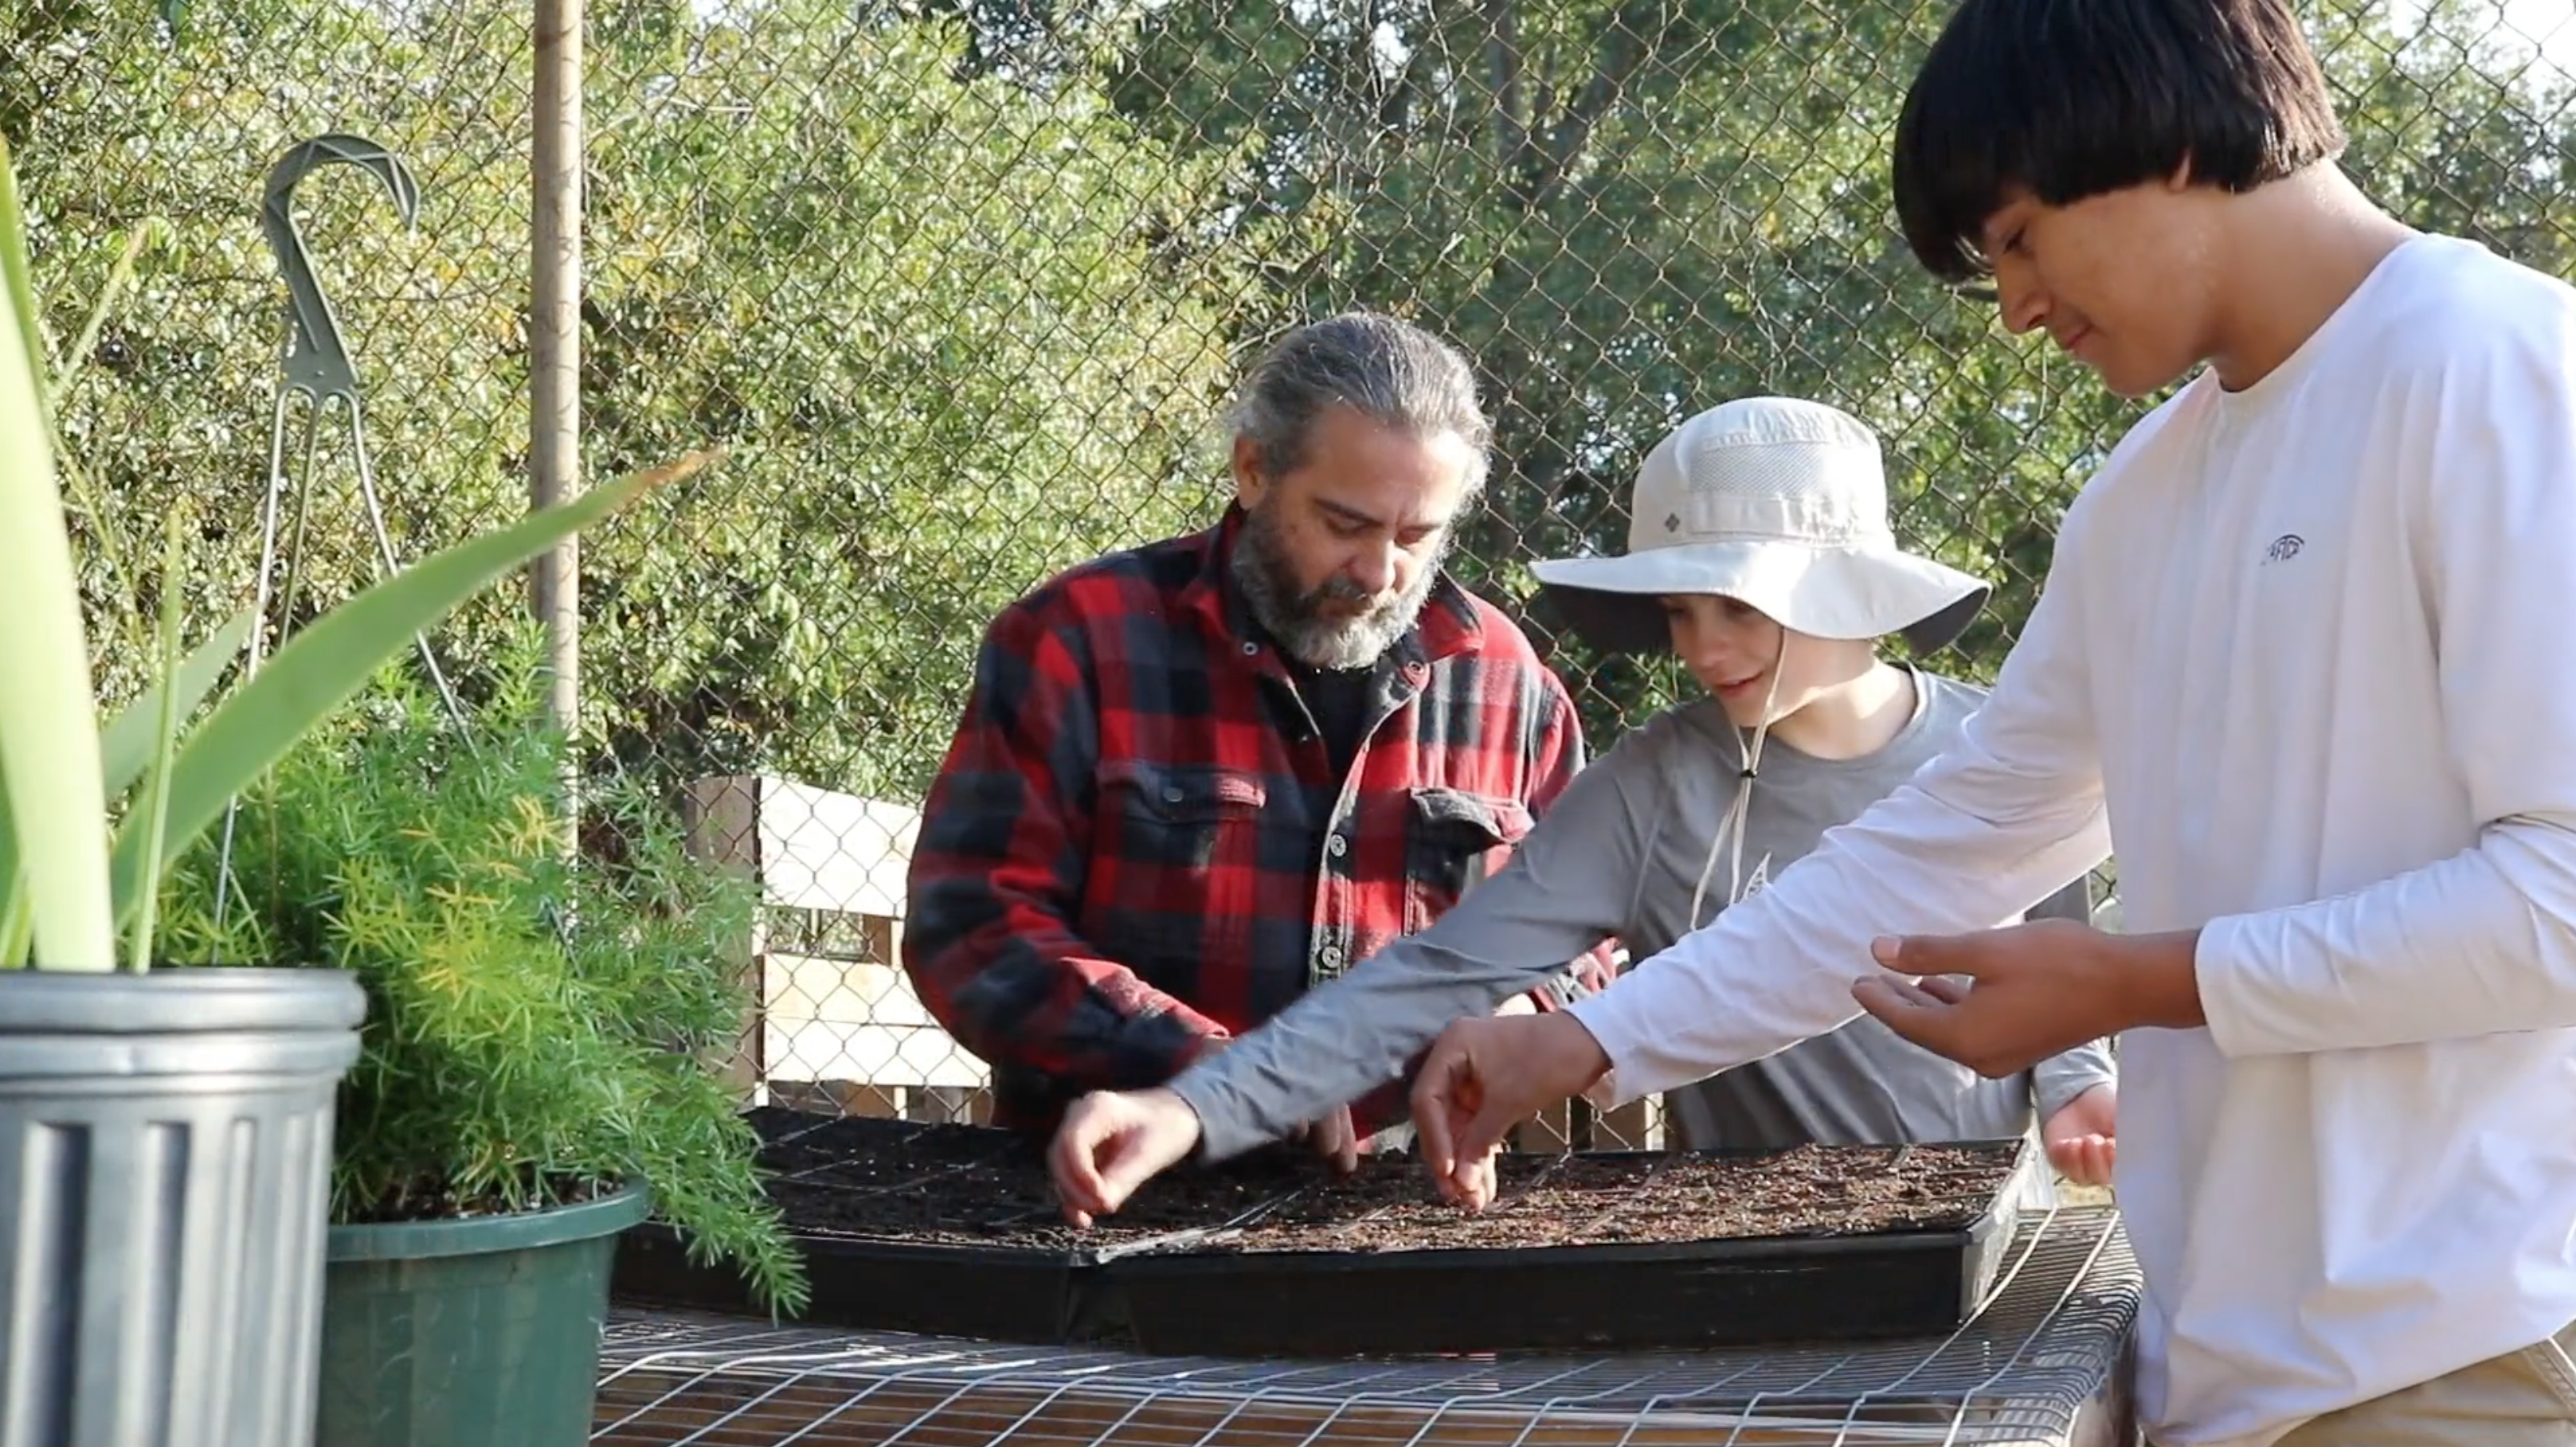 Dr. Forbes planting seeds with two volunteers